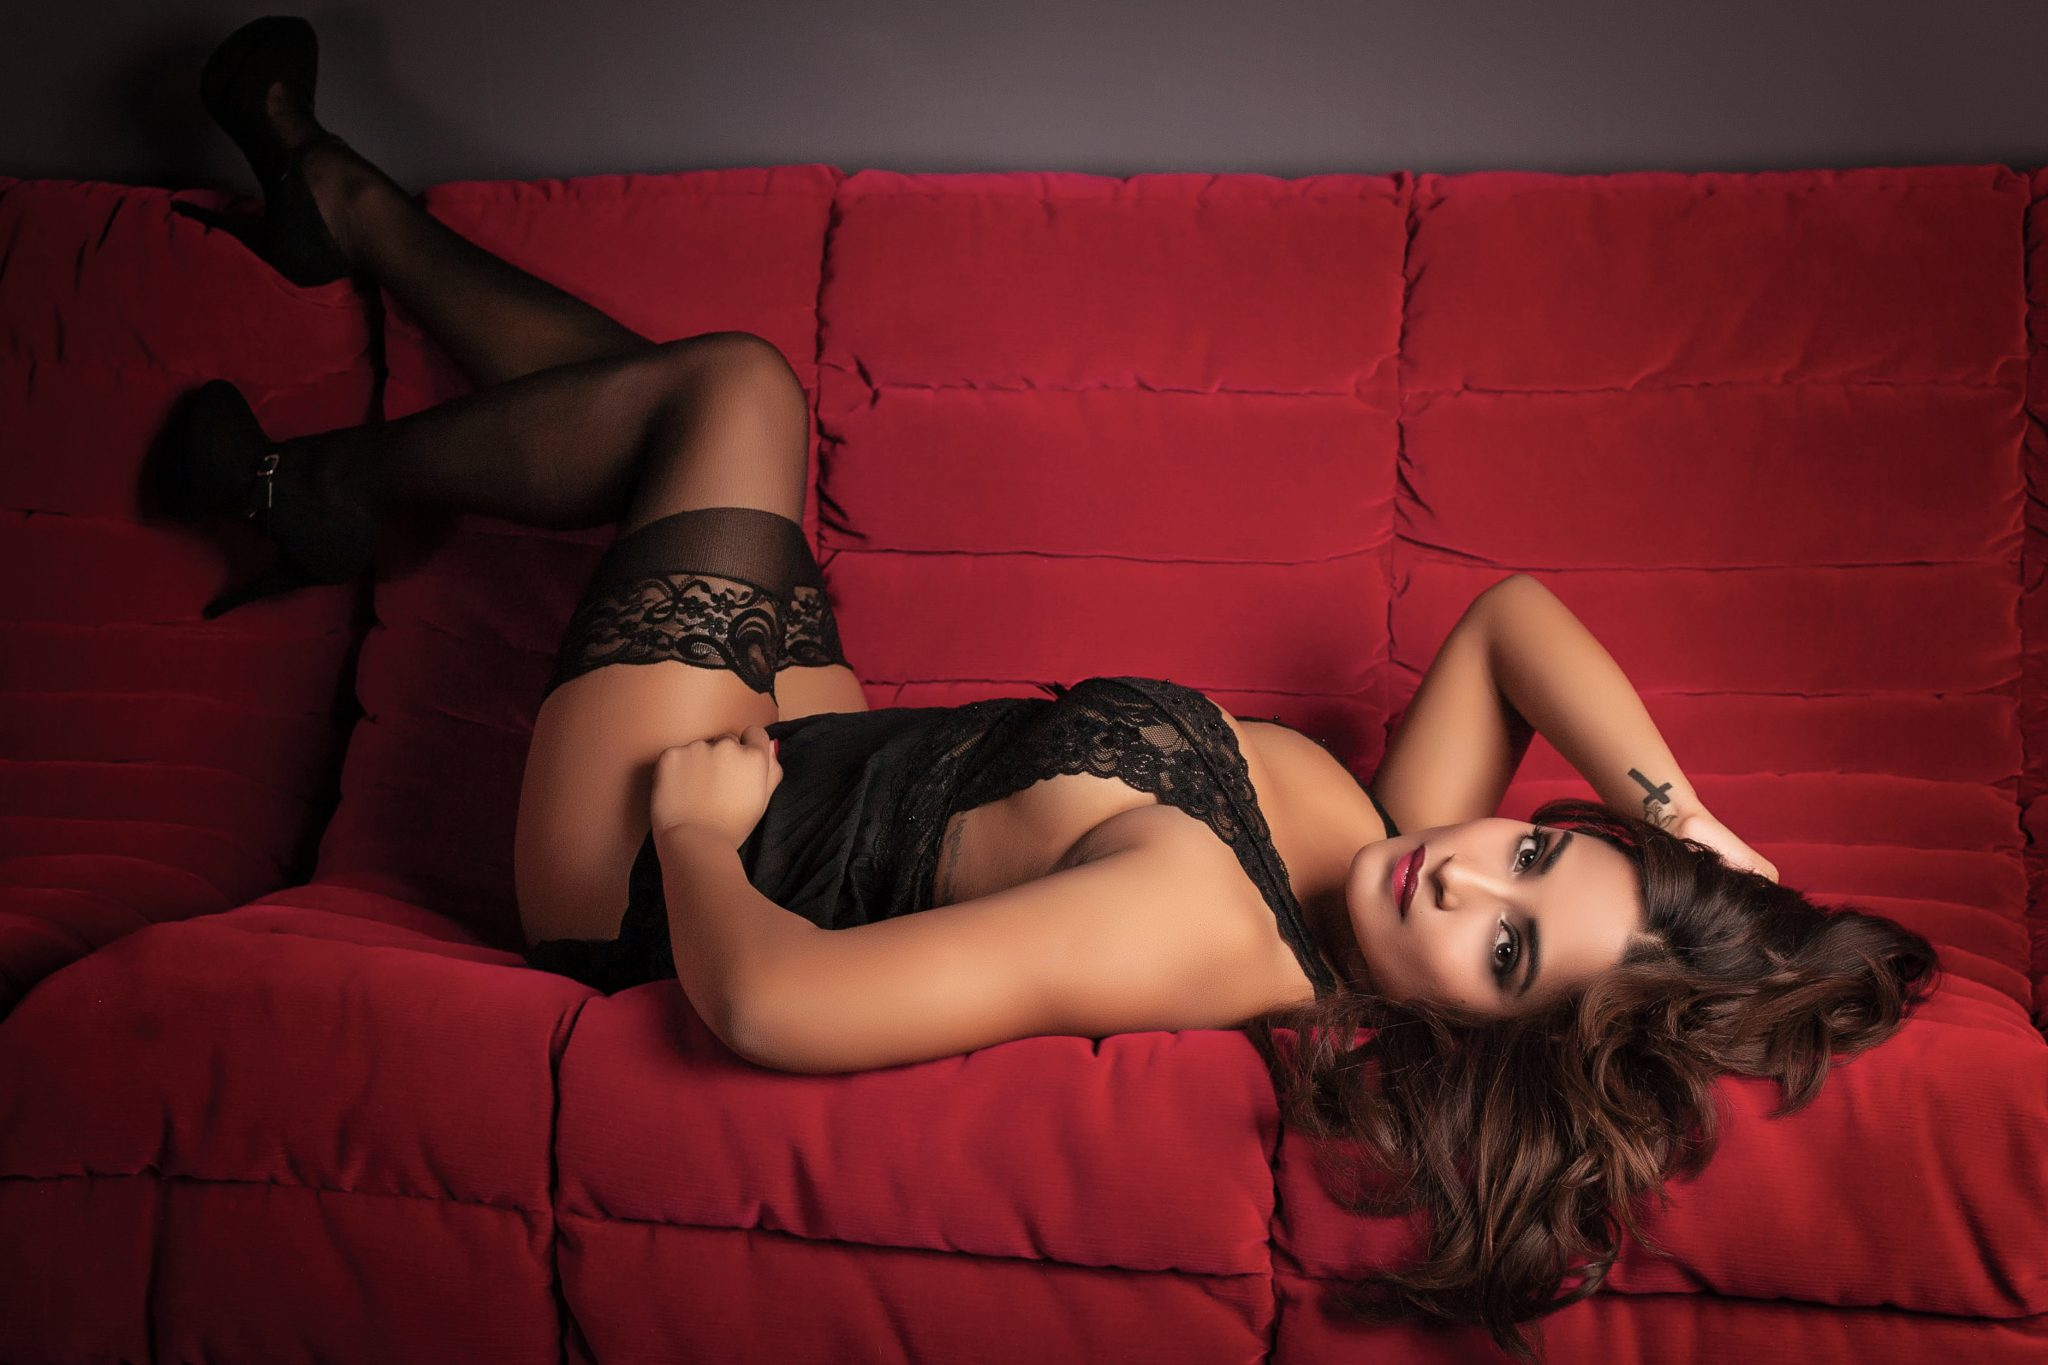 Vibrant colors and strong poses work well in boudoir photos.